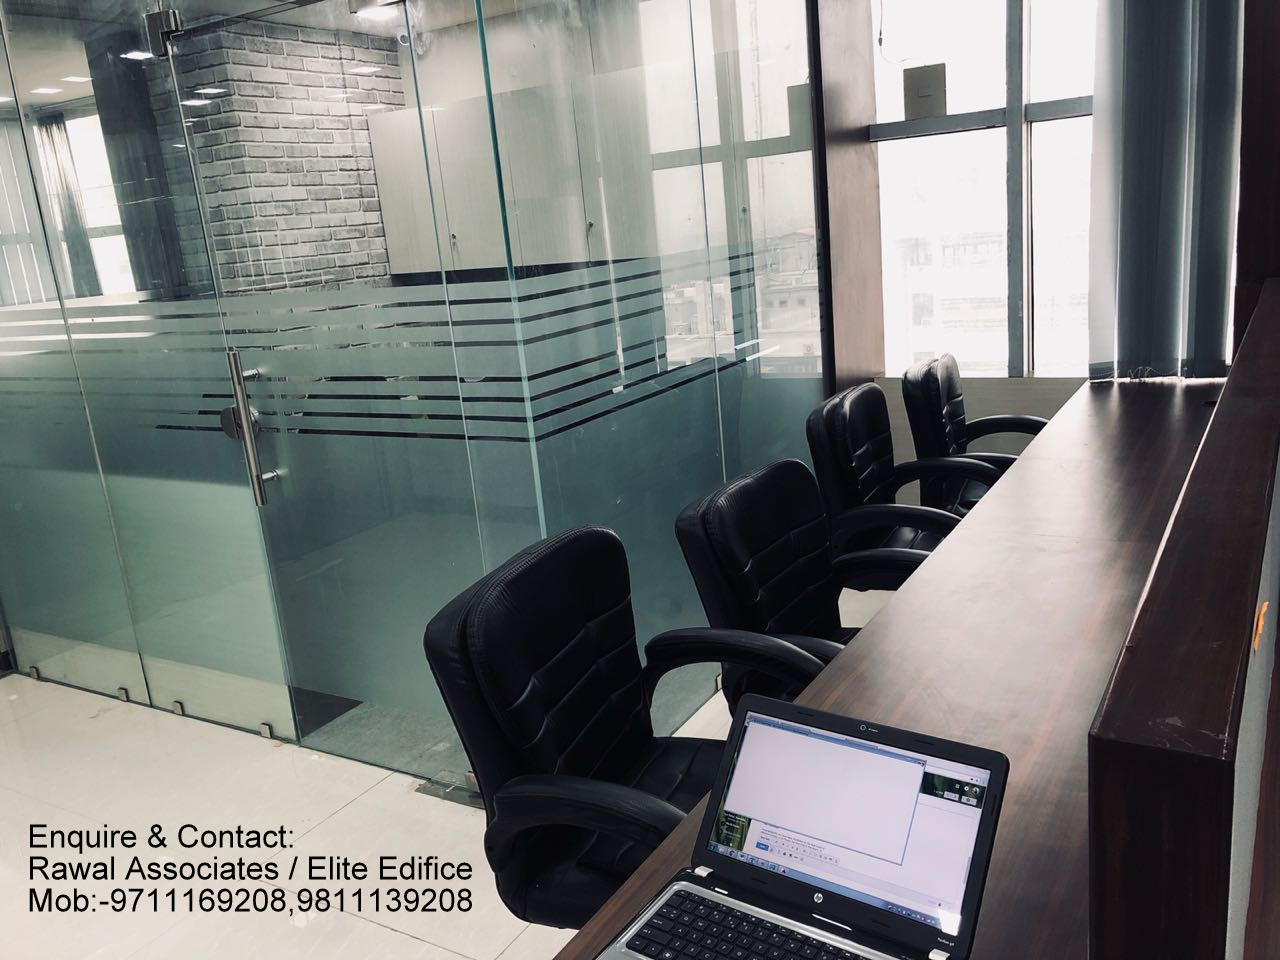 Office Space For Rent/Sale In Netaji Subash Place/9711169208Real EstateOffice-Commercial For Rent LeaseNorth DelhiPitampura